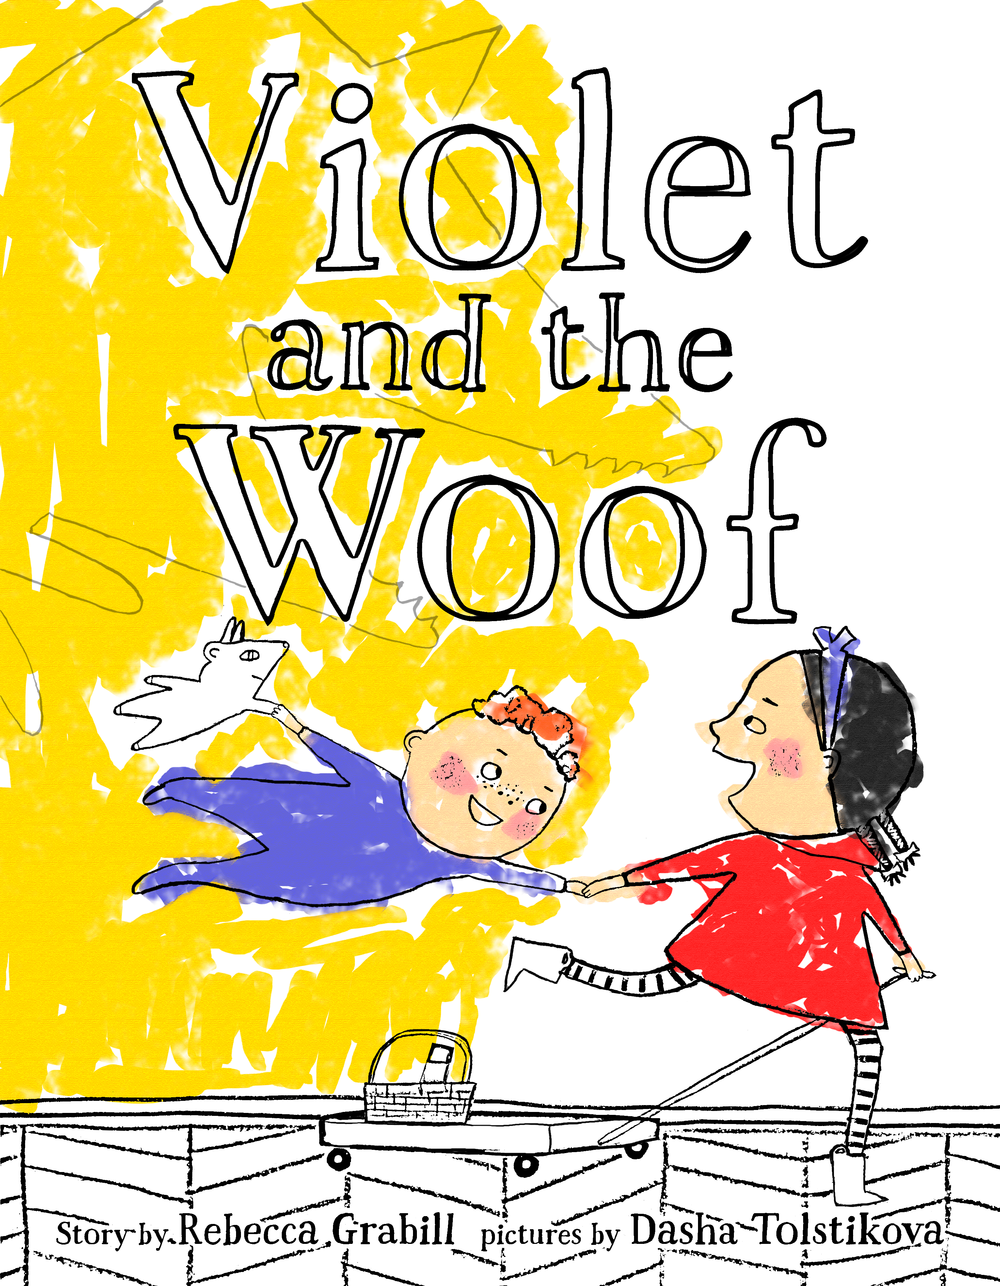 a free printable coloring page from Violet and the Woof by Rebecca Grabill and Dasha Tolstikova